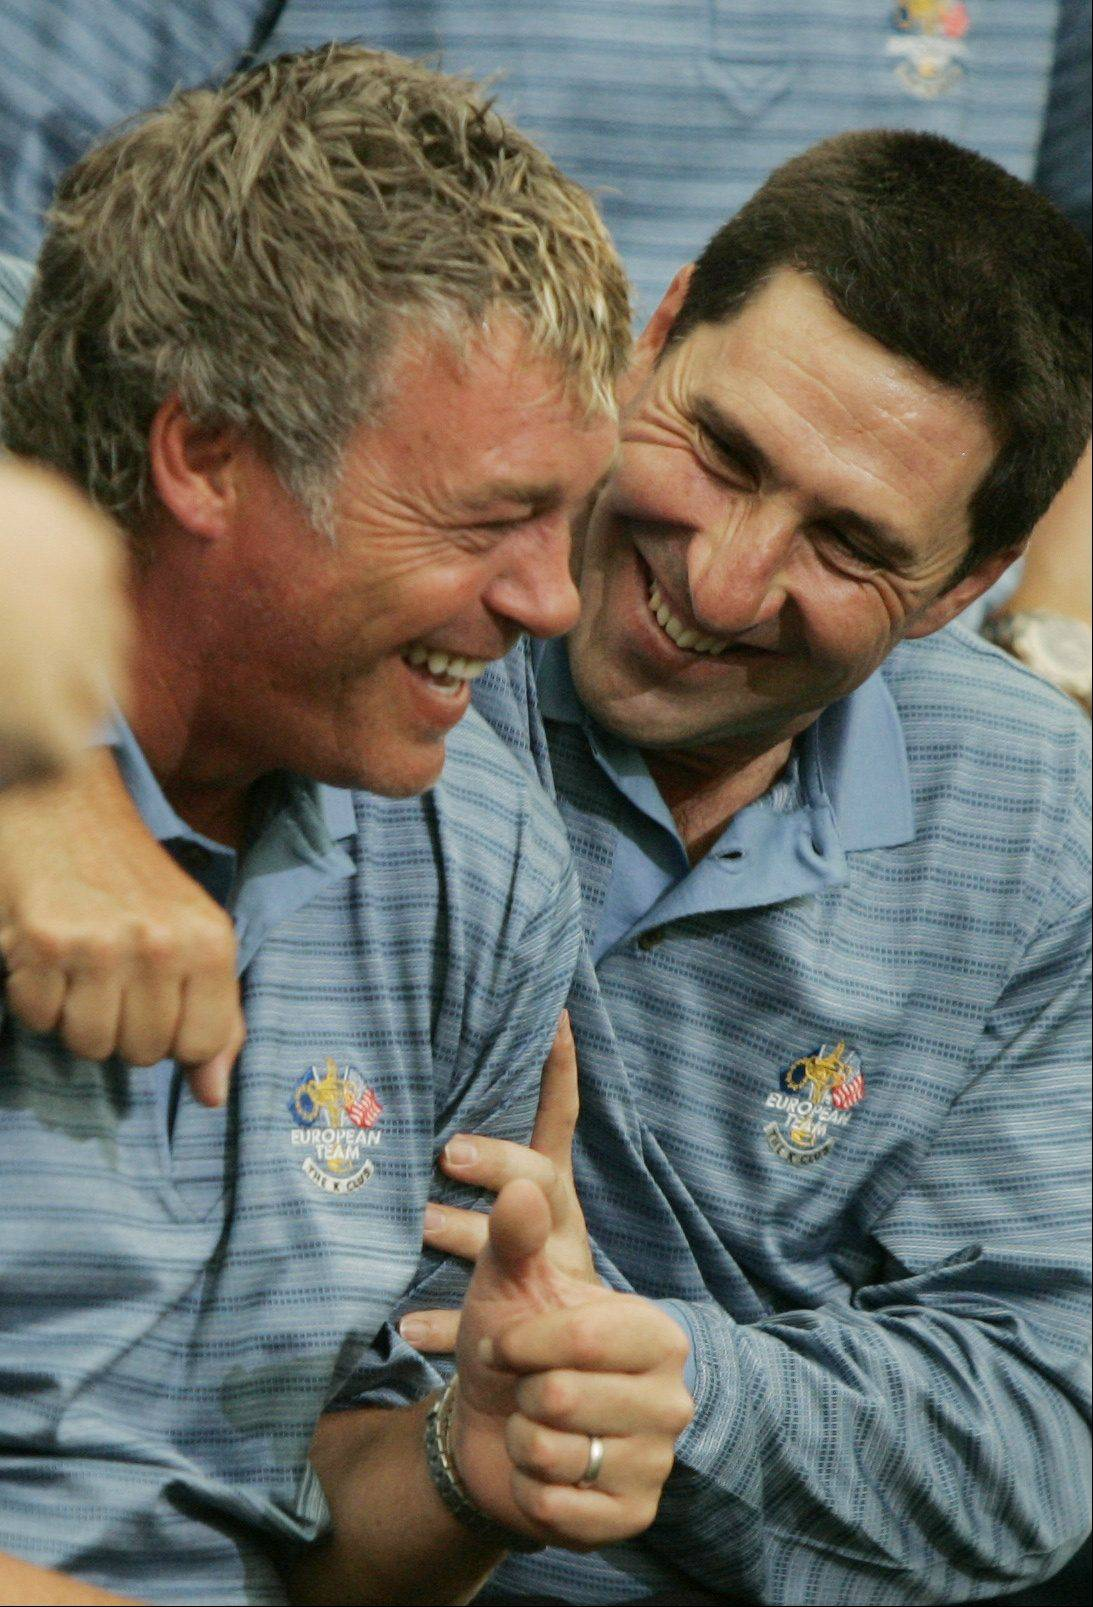 European Ryder Cup team player Darren Clarke, left, is hugged by teammate Jose Maria Olazabal during a photo call for the team at the K Club golf course, Straffan, Ireland, Thursday Sept. 21, 2006. Clarke, hero of the 2006 Cup for the Europeans, lost his wife shortly before the 2006 Cup,